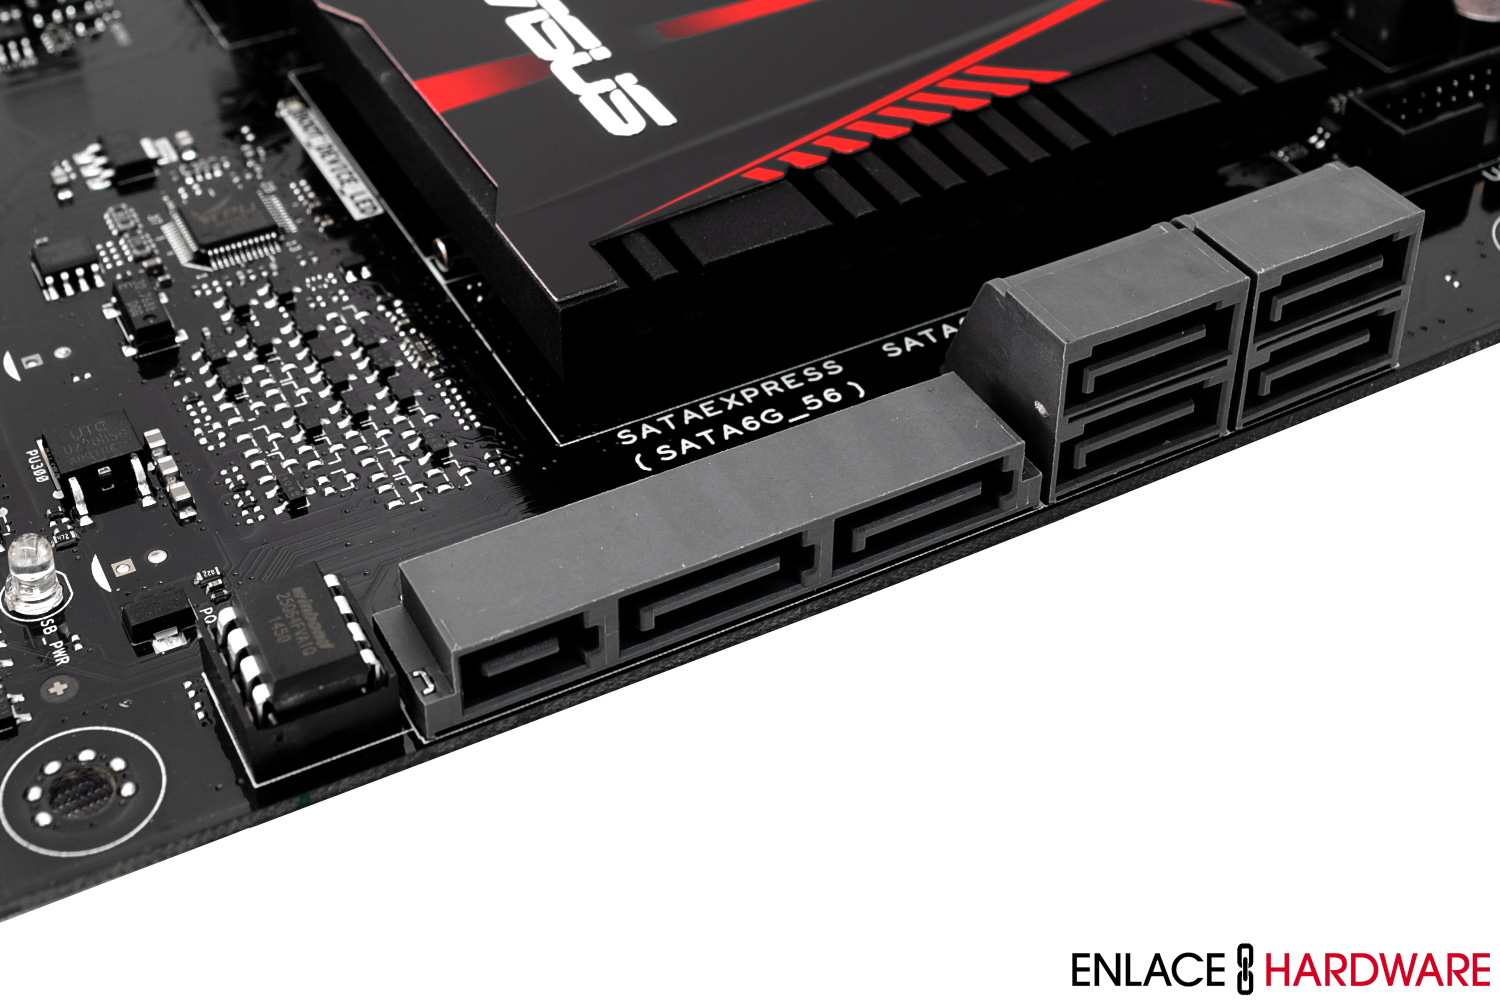 ASUS-Z97-Pro-Gamer-Review-7